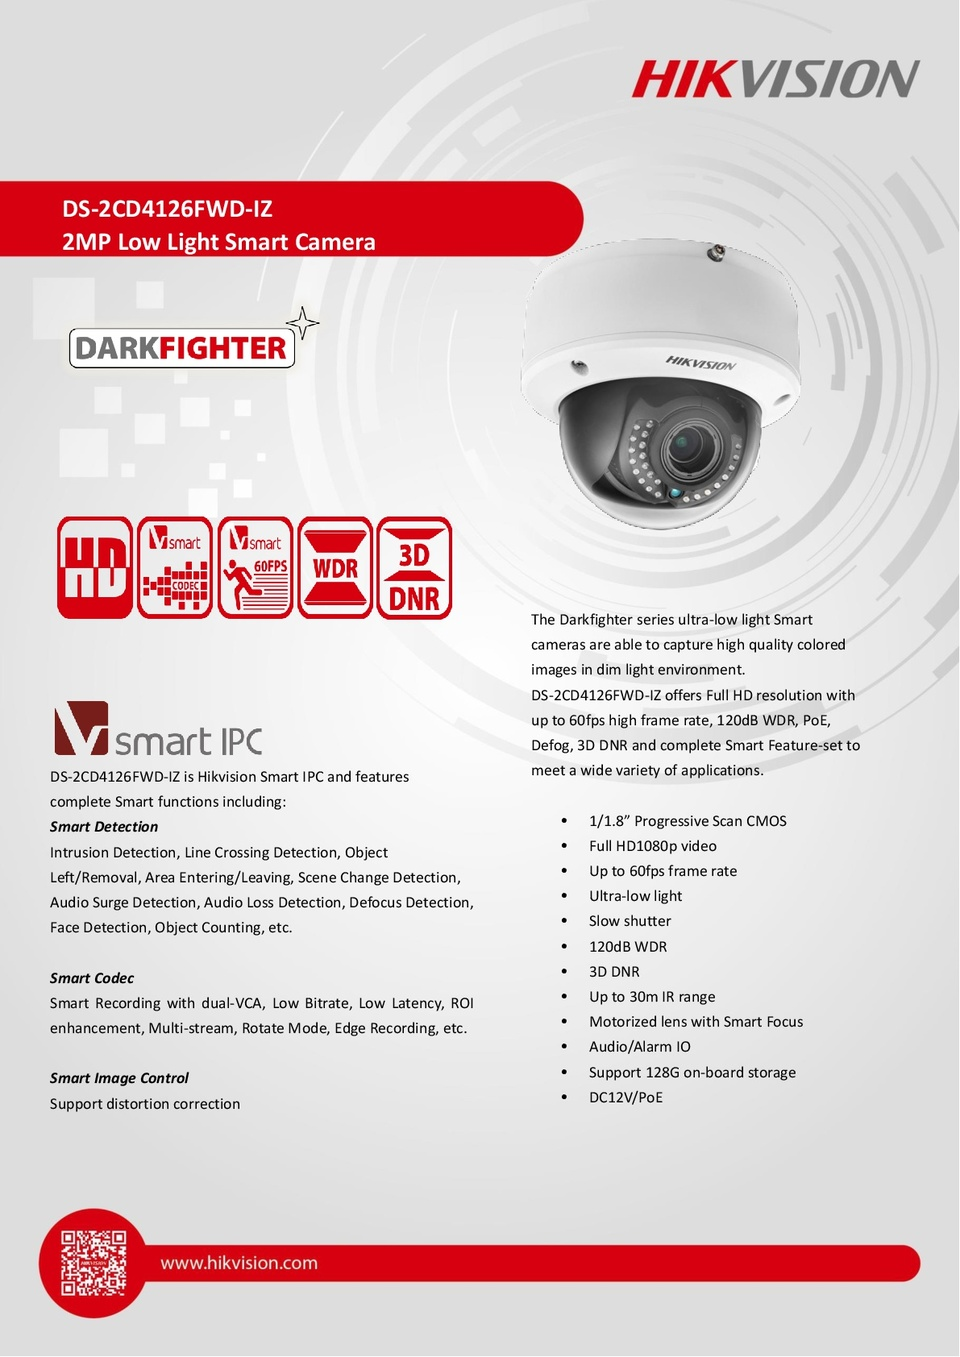 Hikvision DS-2CD4126FWD-IZ 2MP IP DarkFighter Indoor Dome Camera With 2.8-12mm Motorized Lens 0